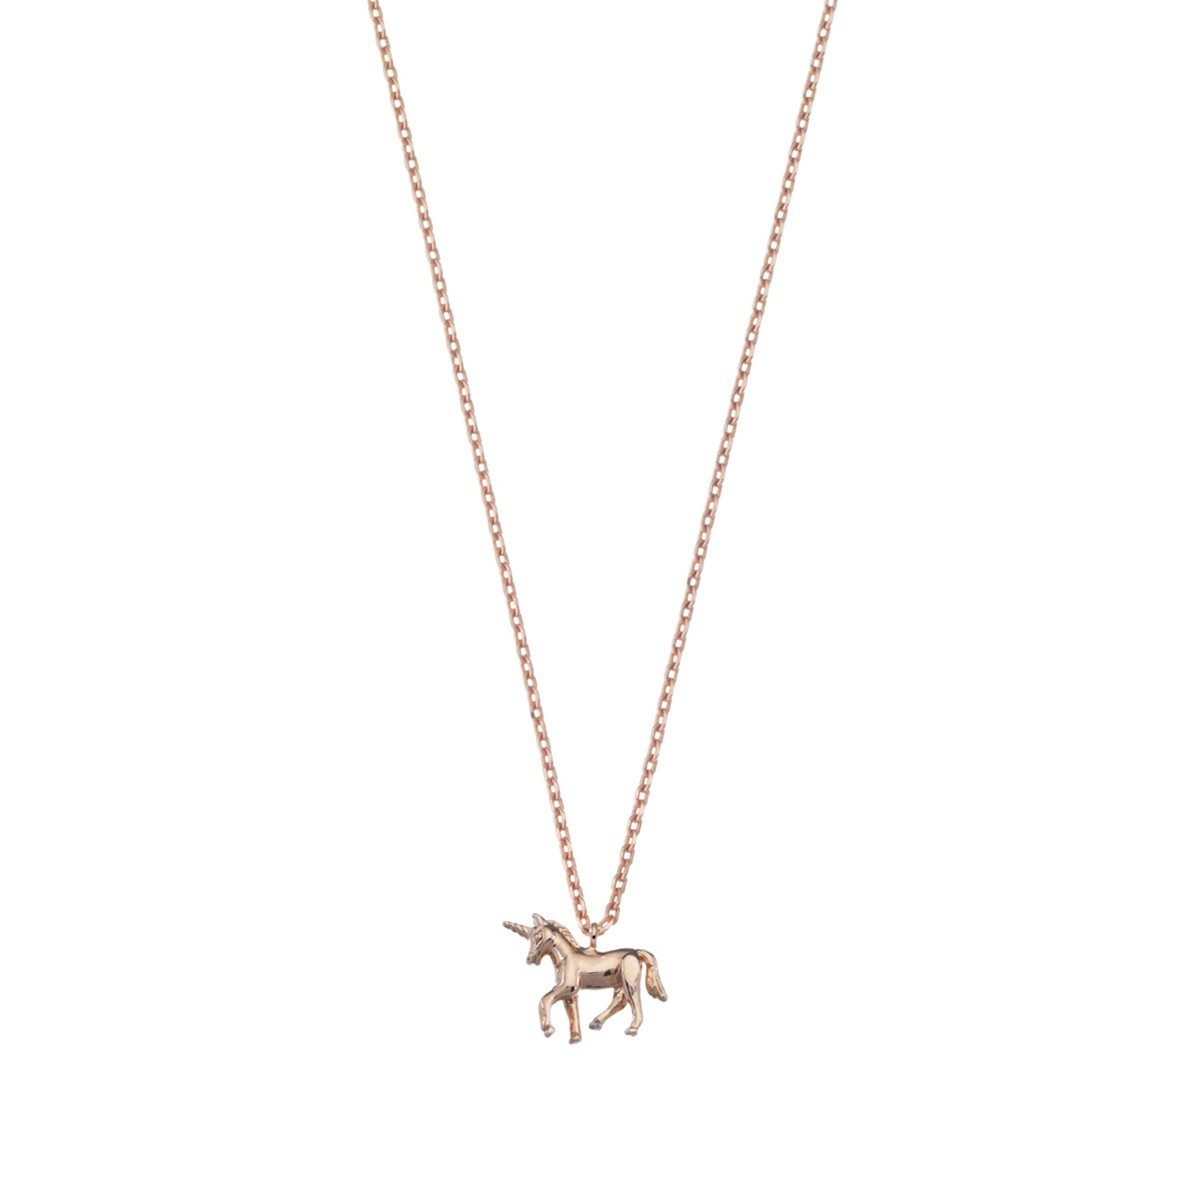 Collier Licorne or rose - support personnalisé